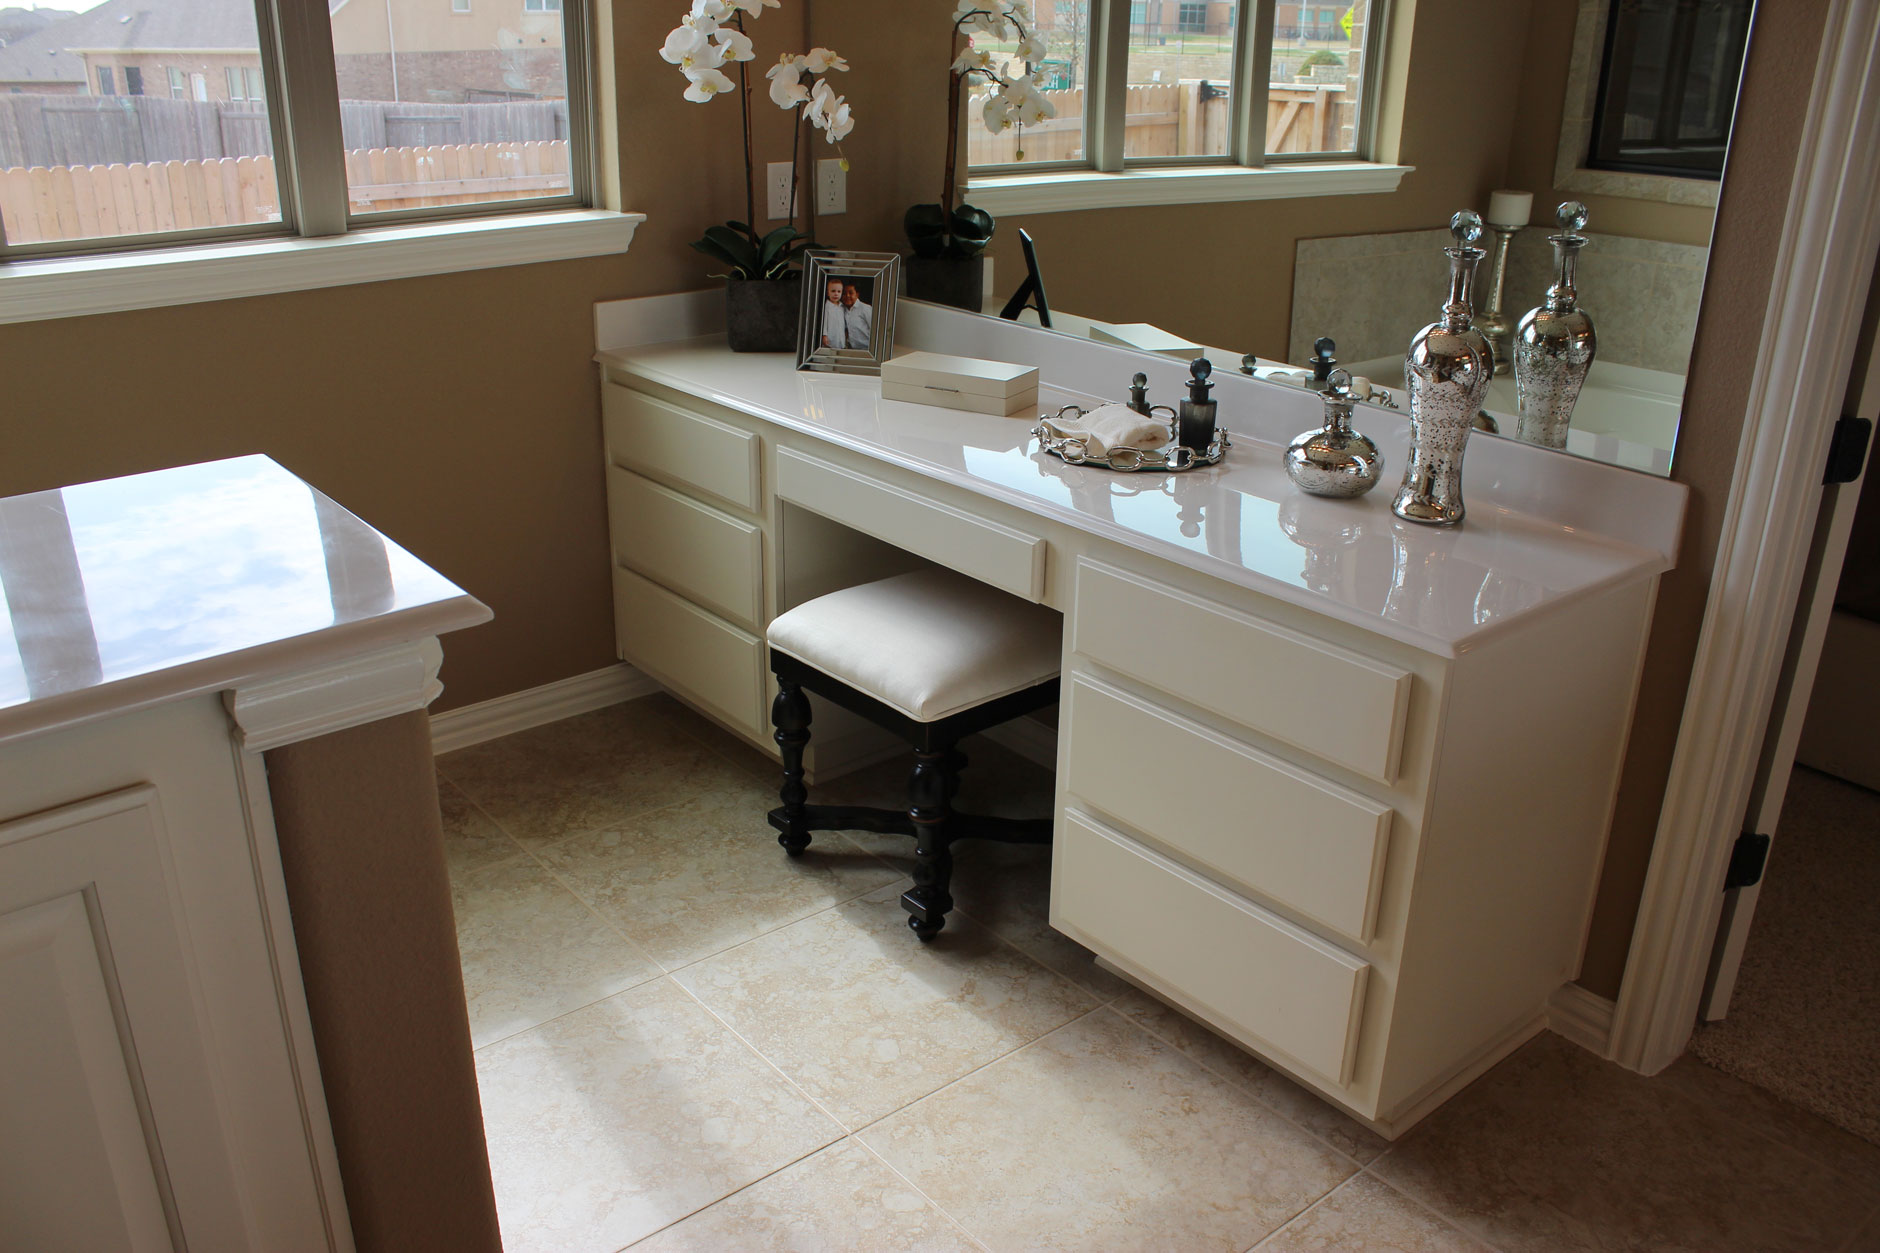 Burrows Cabinets master bath vanity with knee space in bone